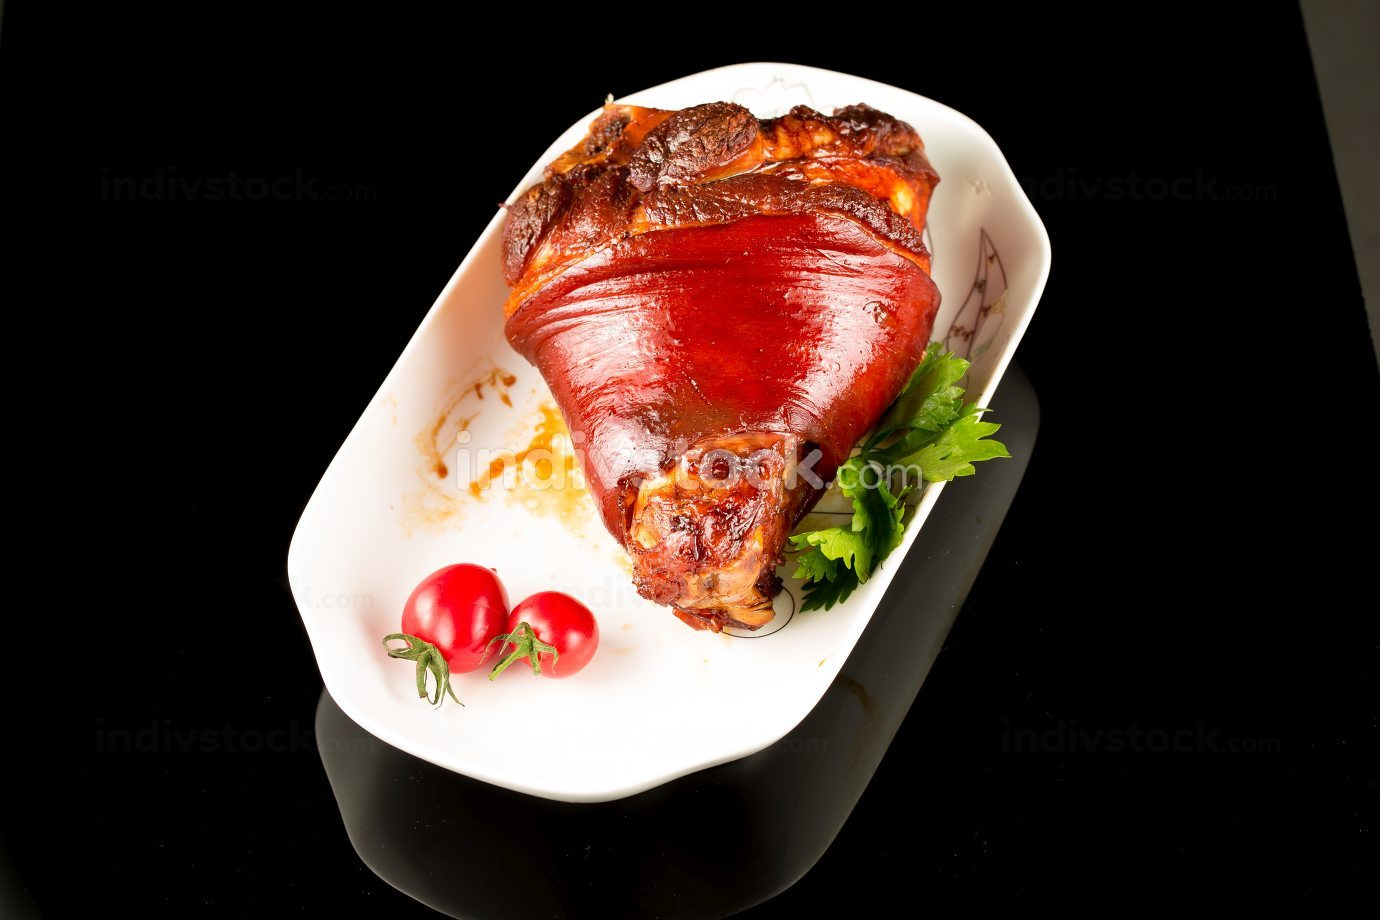 Braised pig elbow, Chinese cuisine.